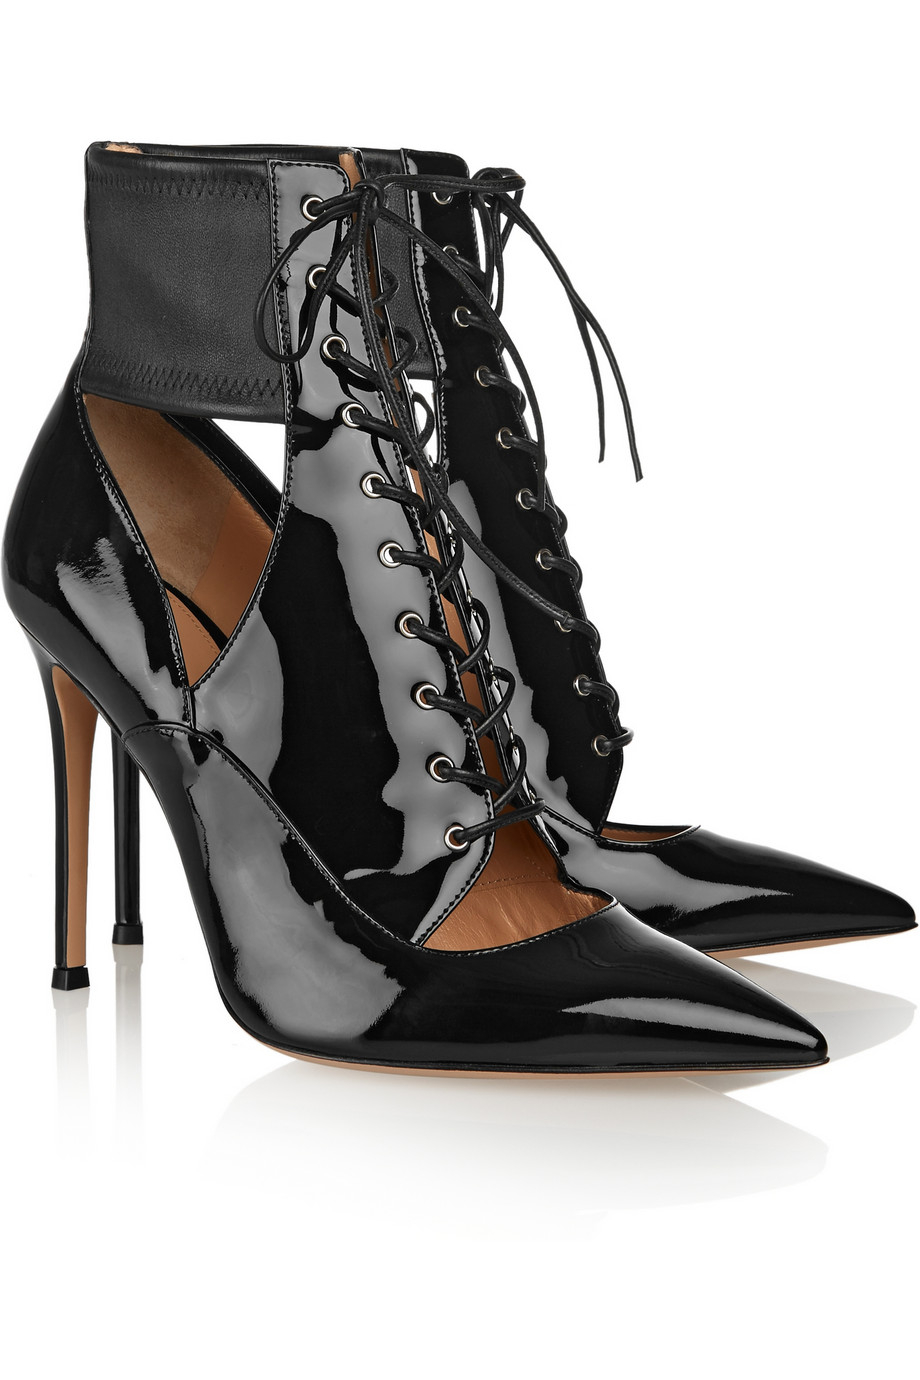 Gianvito Rossi Lace Up Patent Leather Ankle Boots In Black